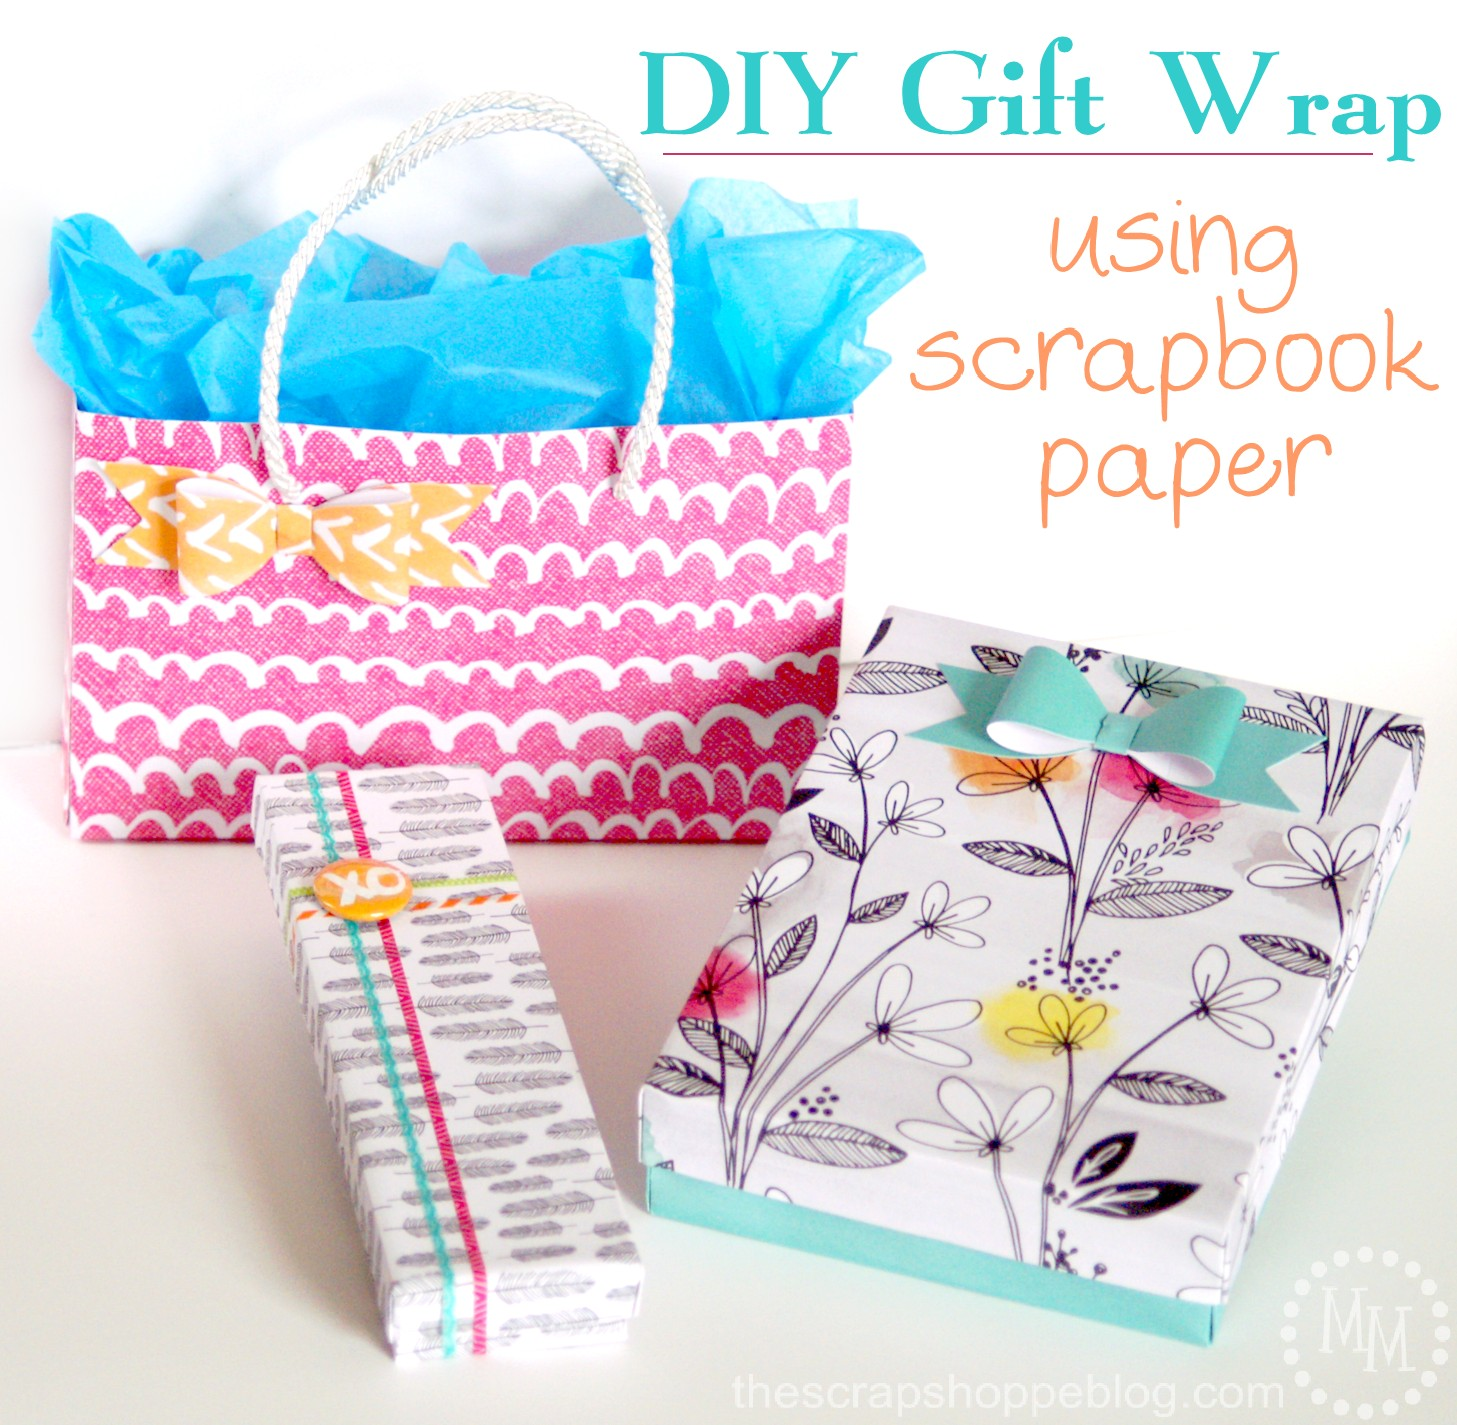 Diy gift wrap using scrapbook paper the scrap shoppe for Diy gift projects